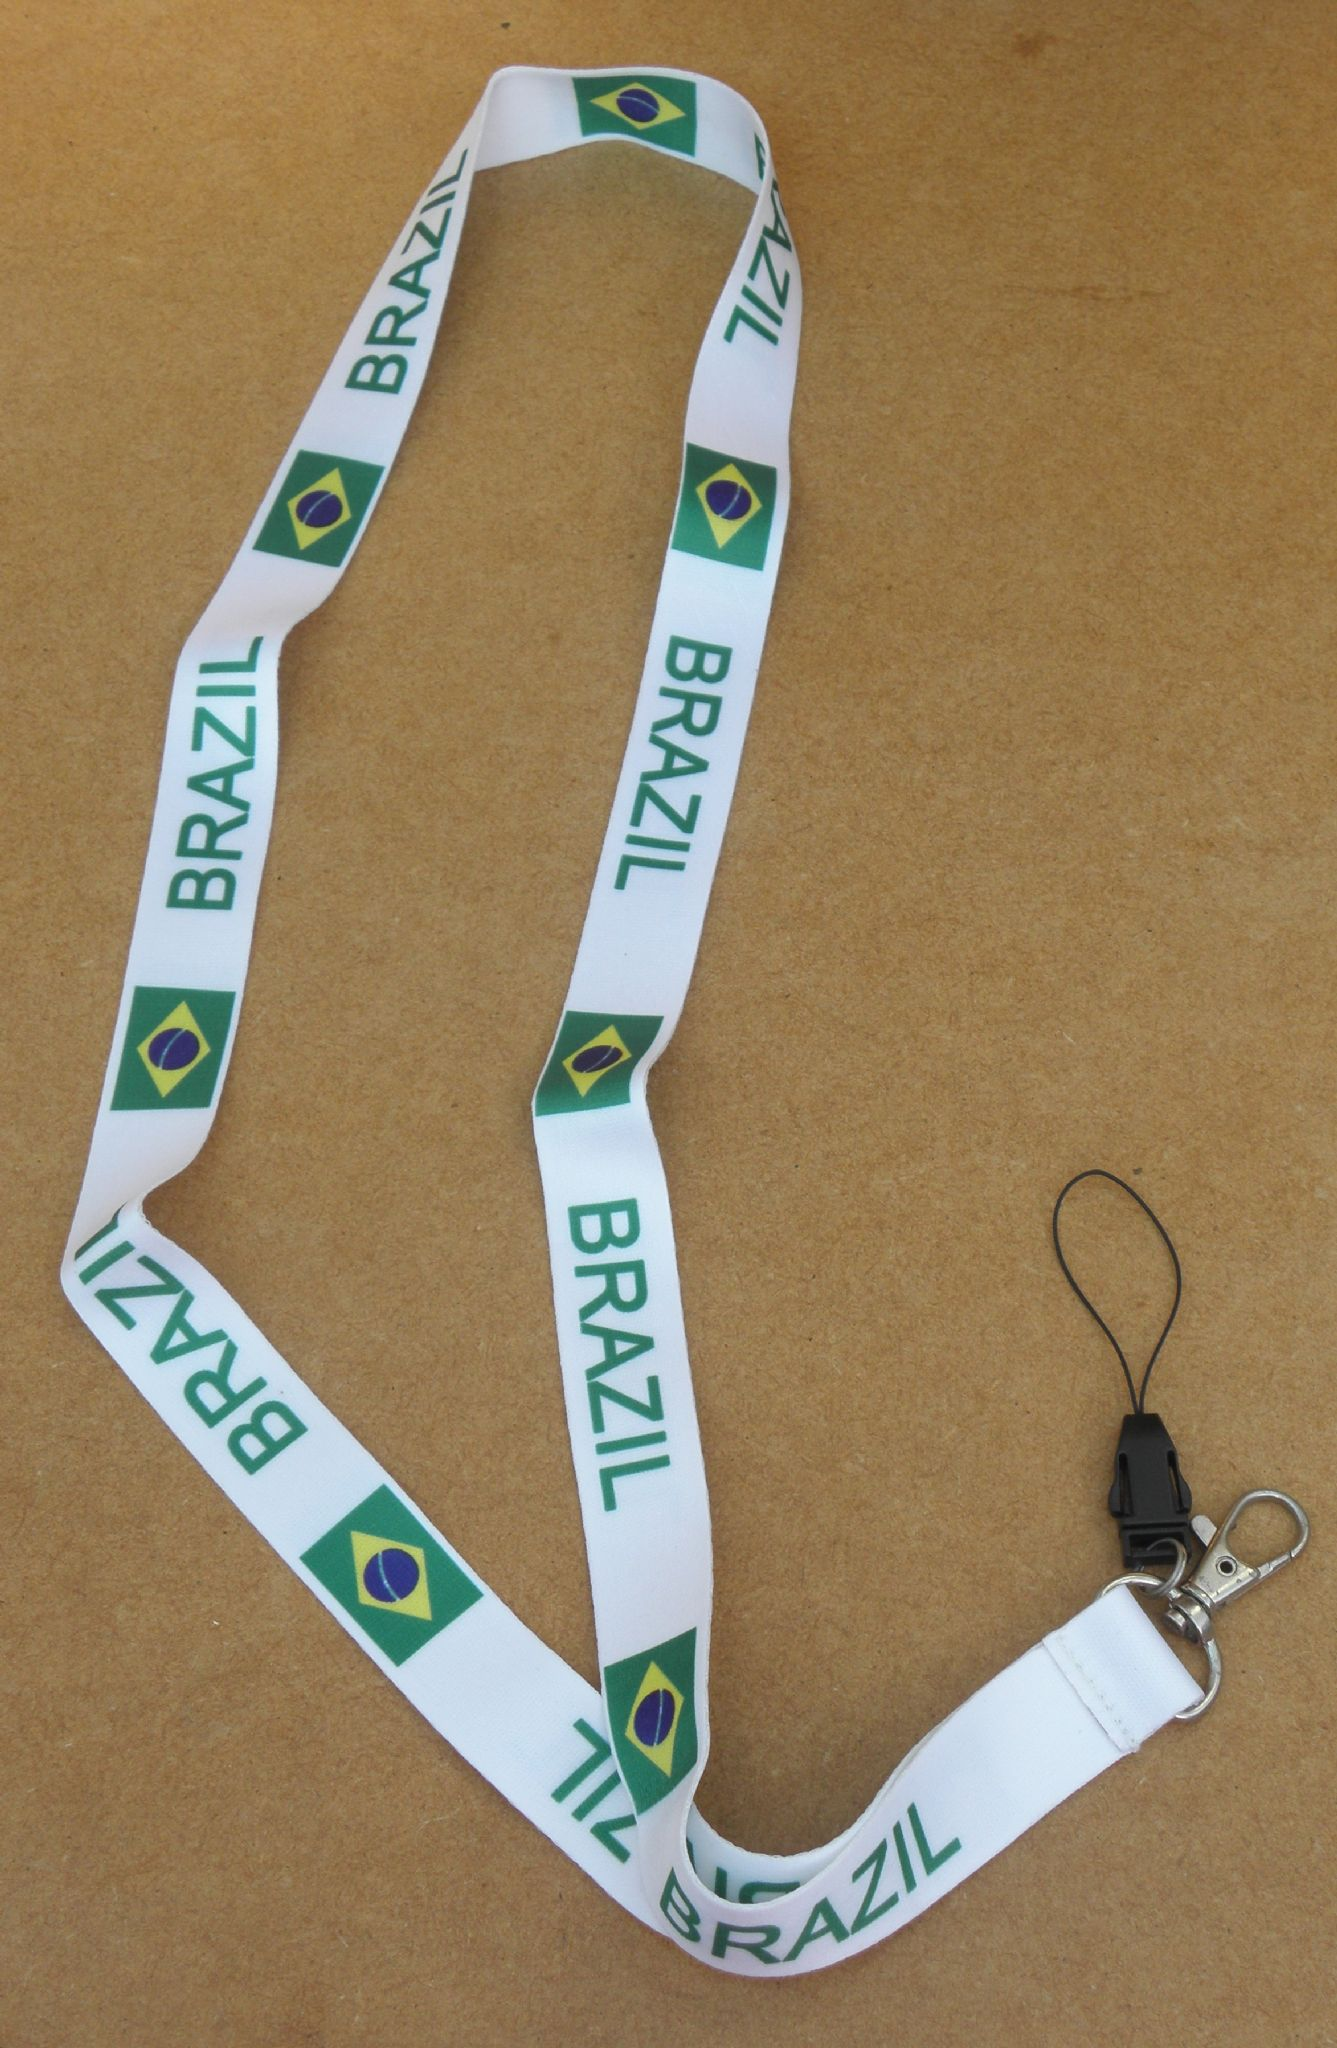 Brazil Brasil Country Flag Lanyard Neck Strap 4 Mobile MP3 IPOD Conference Pass